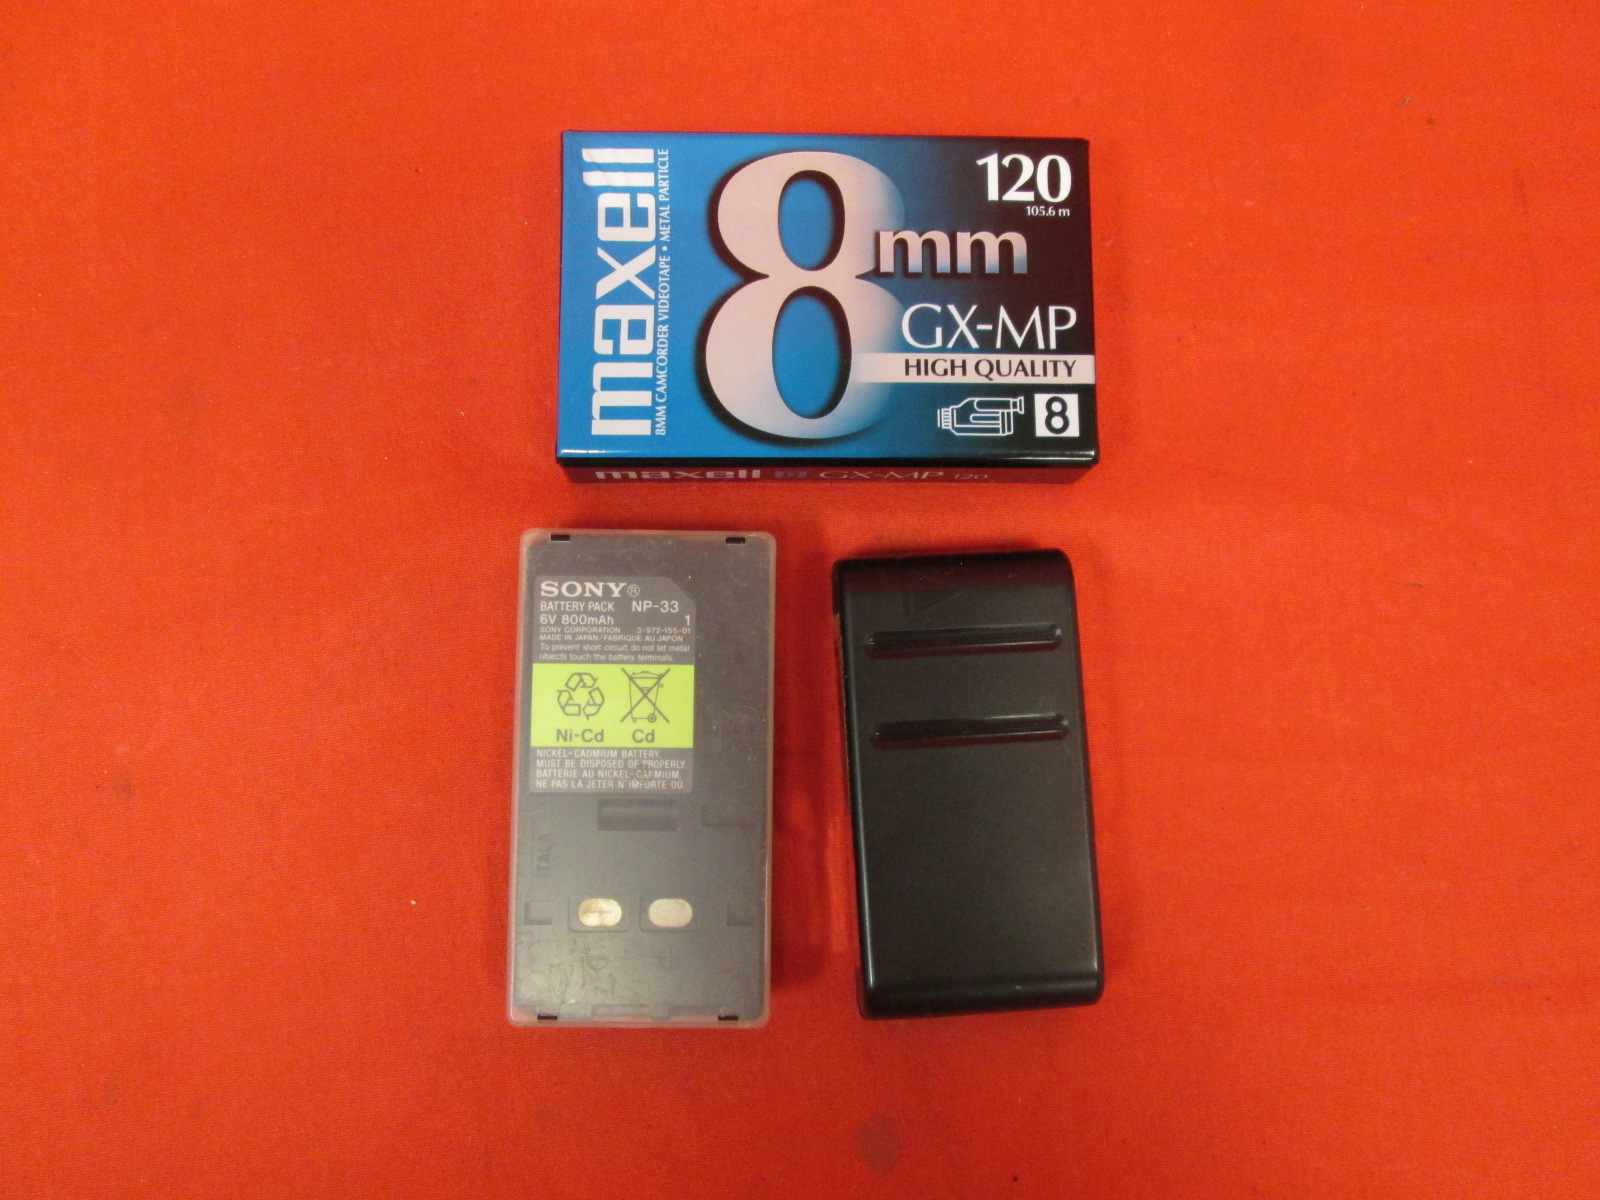 Replacement Battery Packs And Maxell Casette Cartridge For Sony NP-33